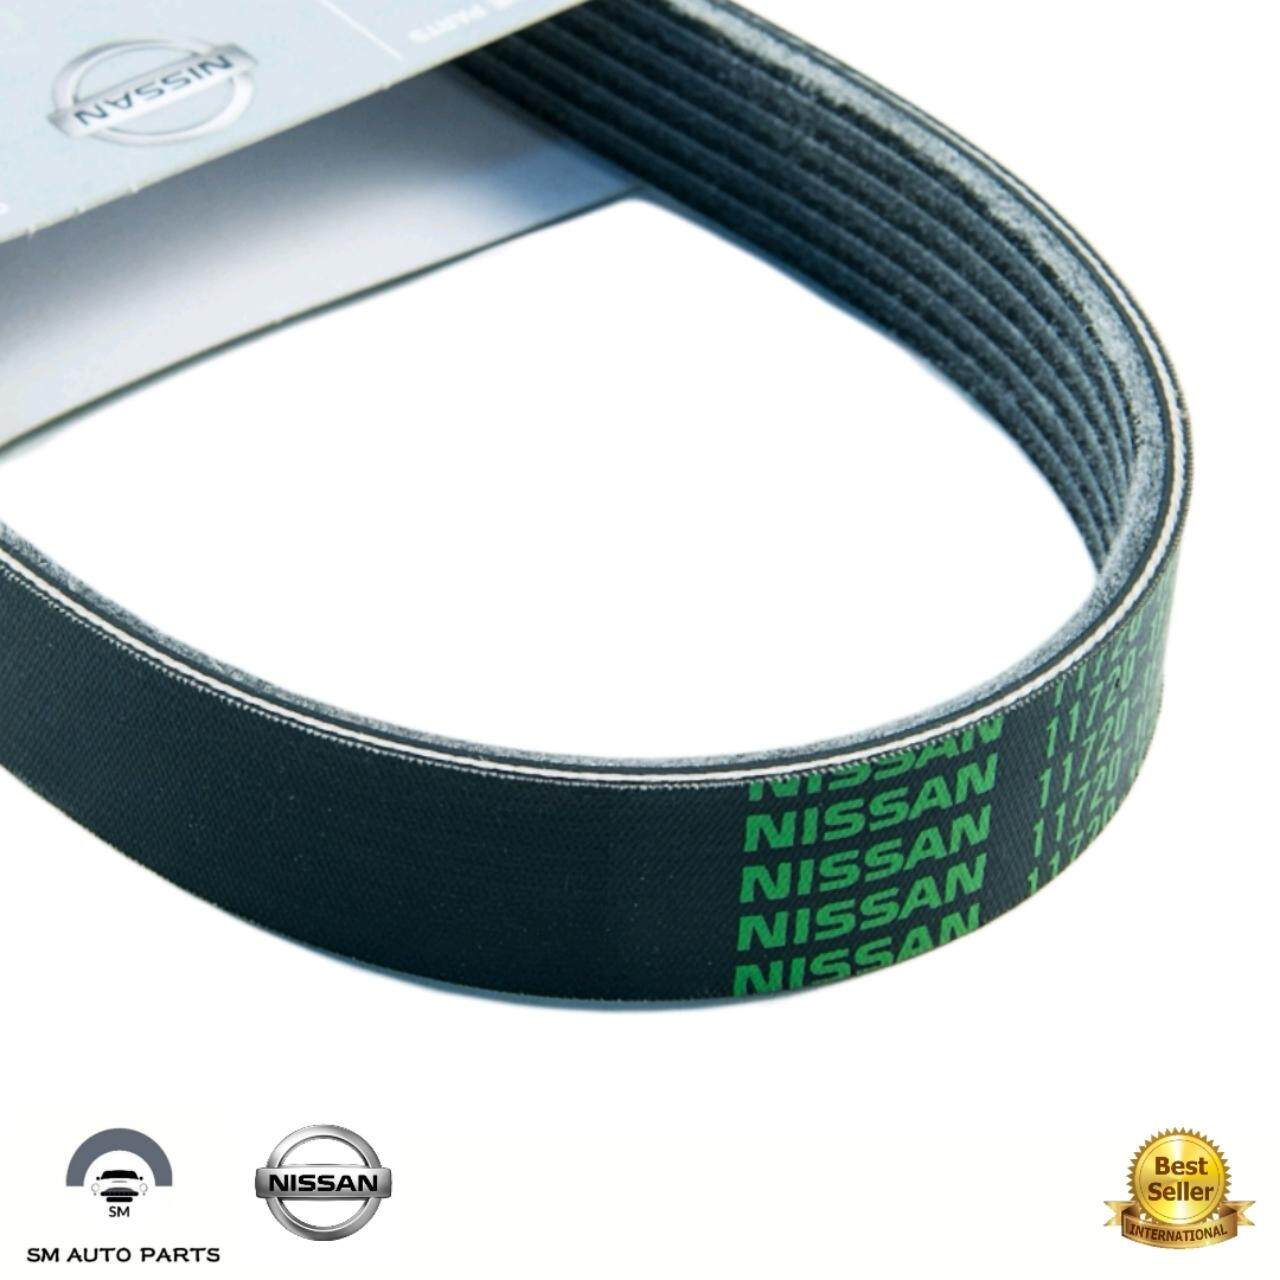 Nissan Auto Parts Spares Price In Malaysia Best B12 Engine Fuse Box Fan Belt 6pk2247 X Trail T30